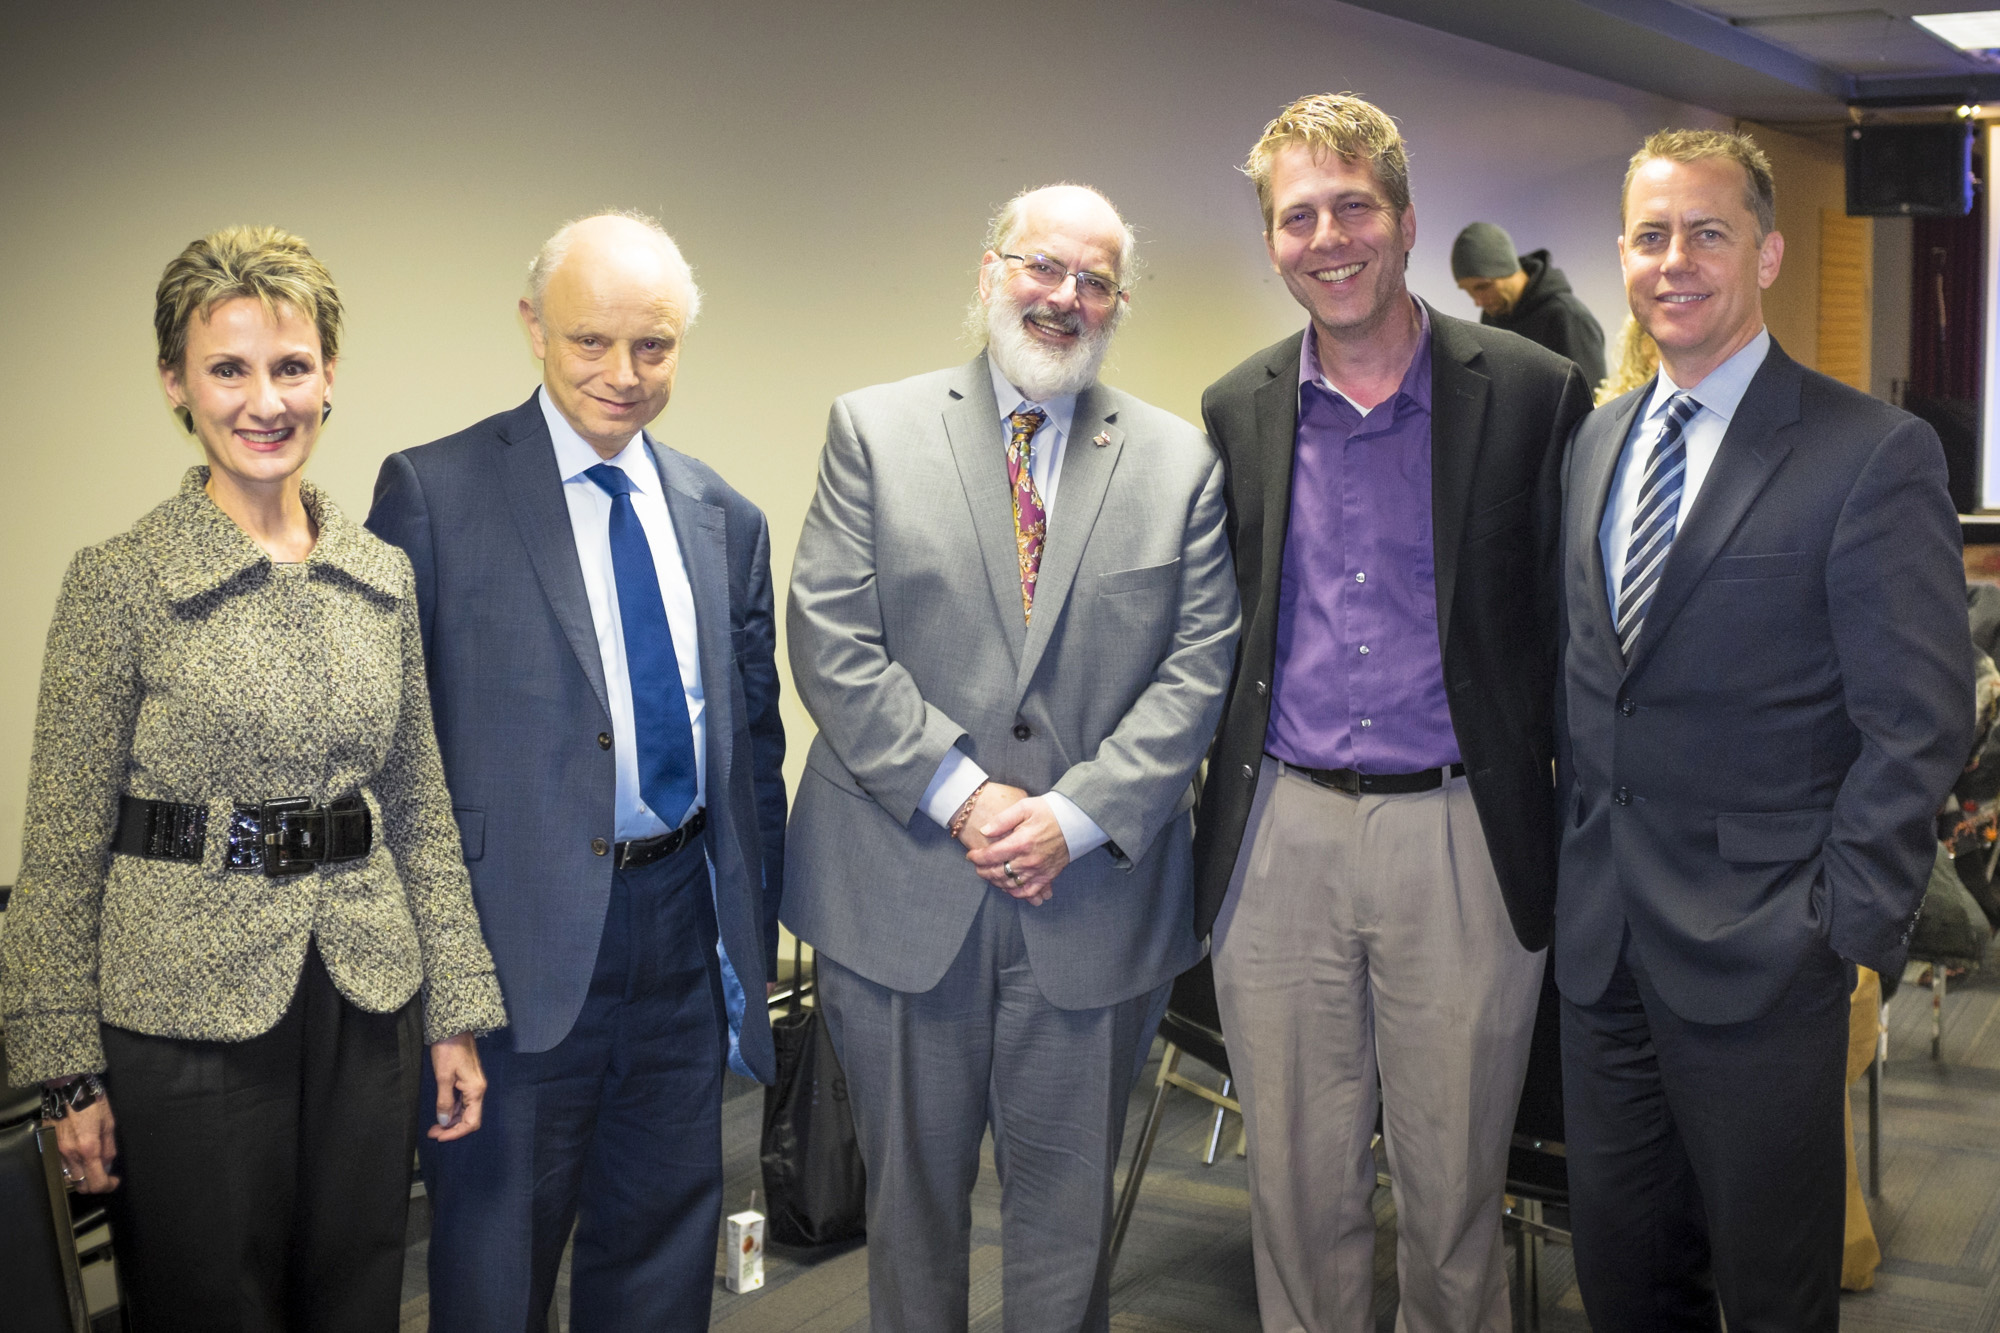 Margaret Lioi, Peter Freeman, Robert Baird, David Cutler, Tim Robinson.